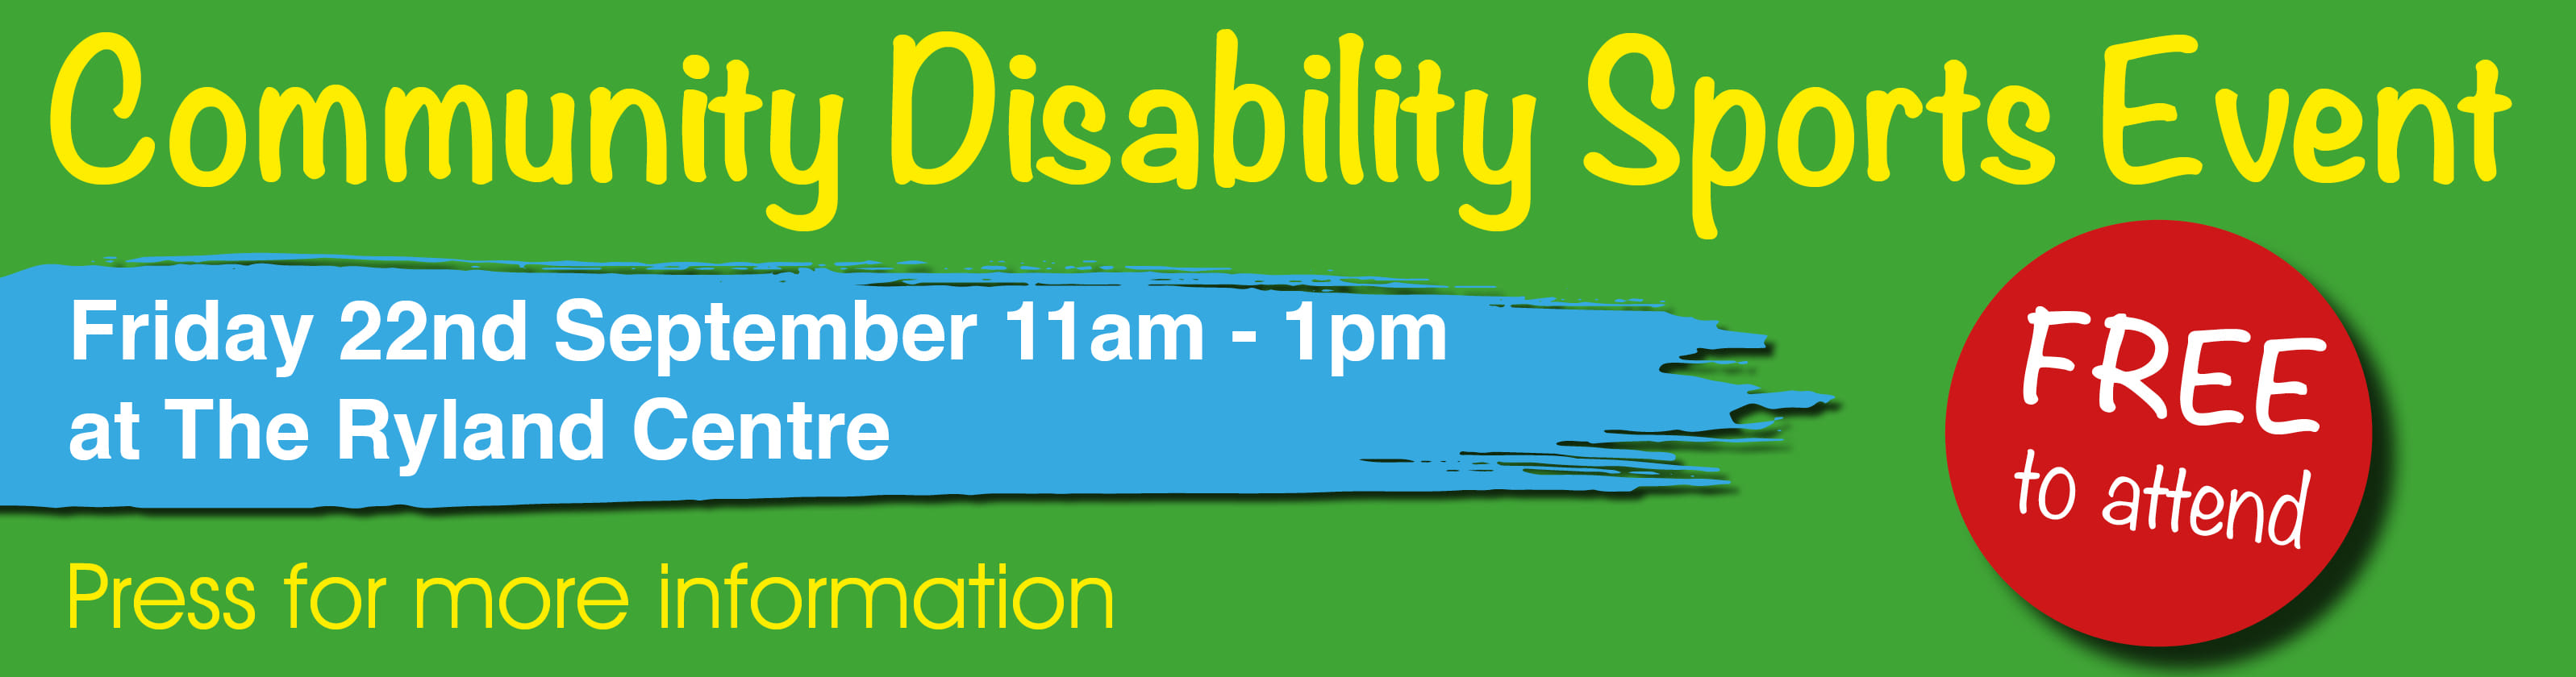 A promotional banner for a free disability sports event